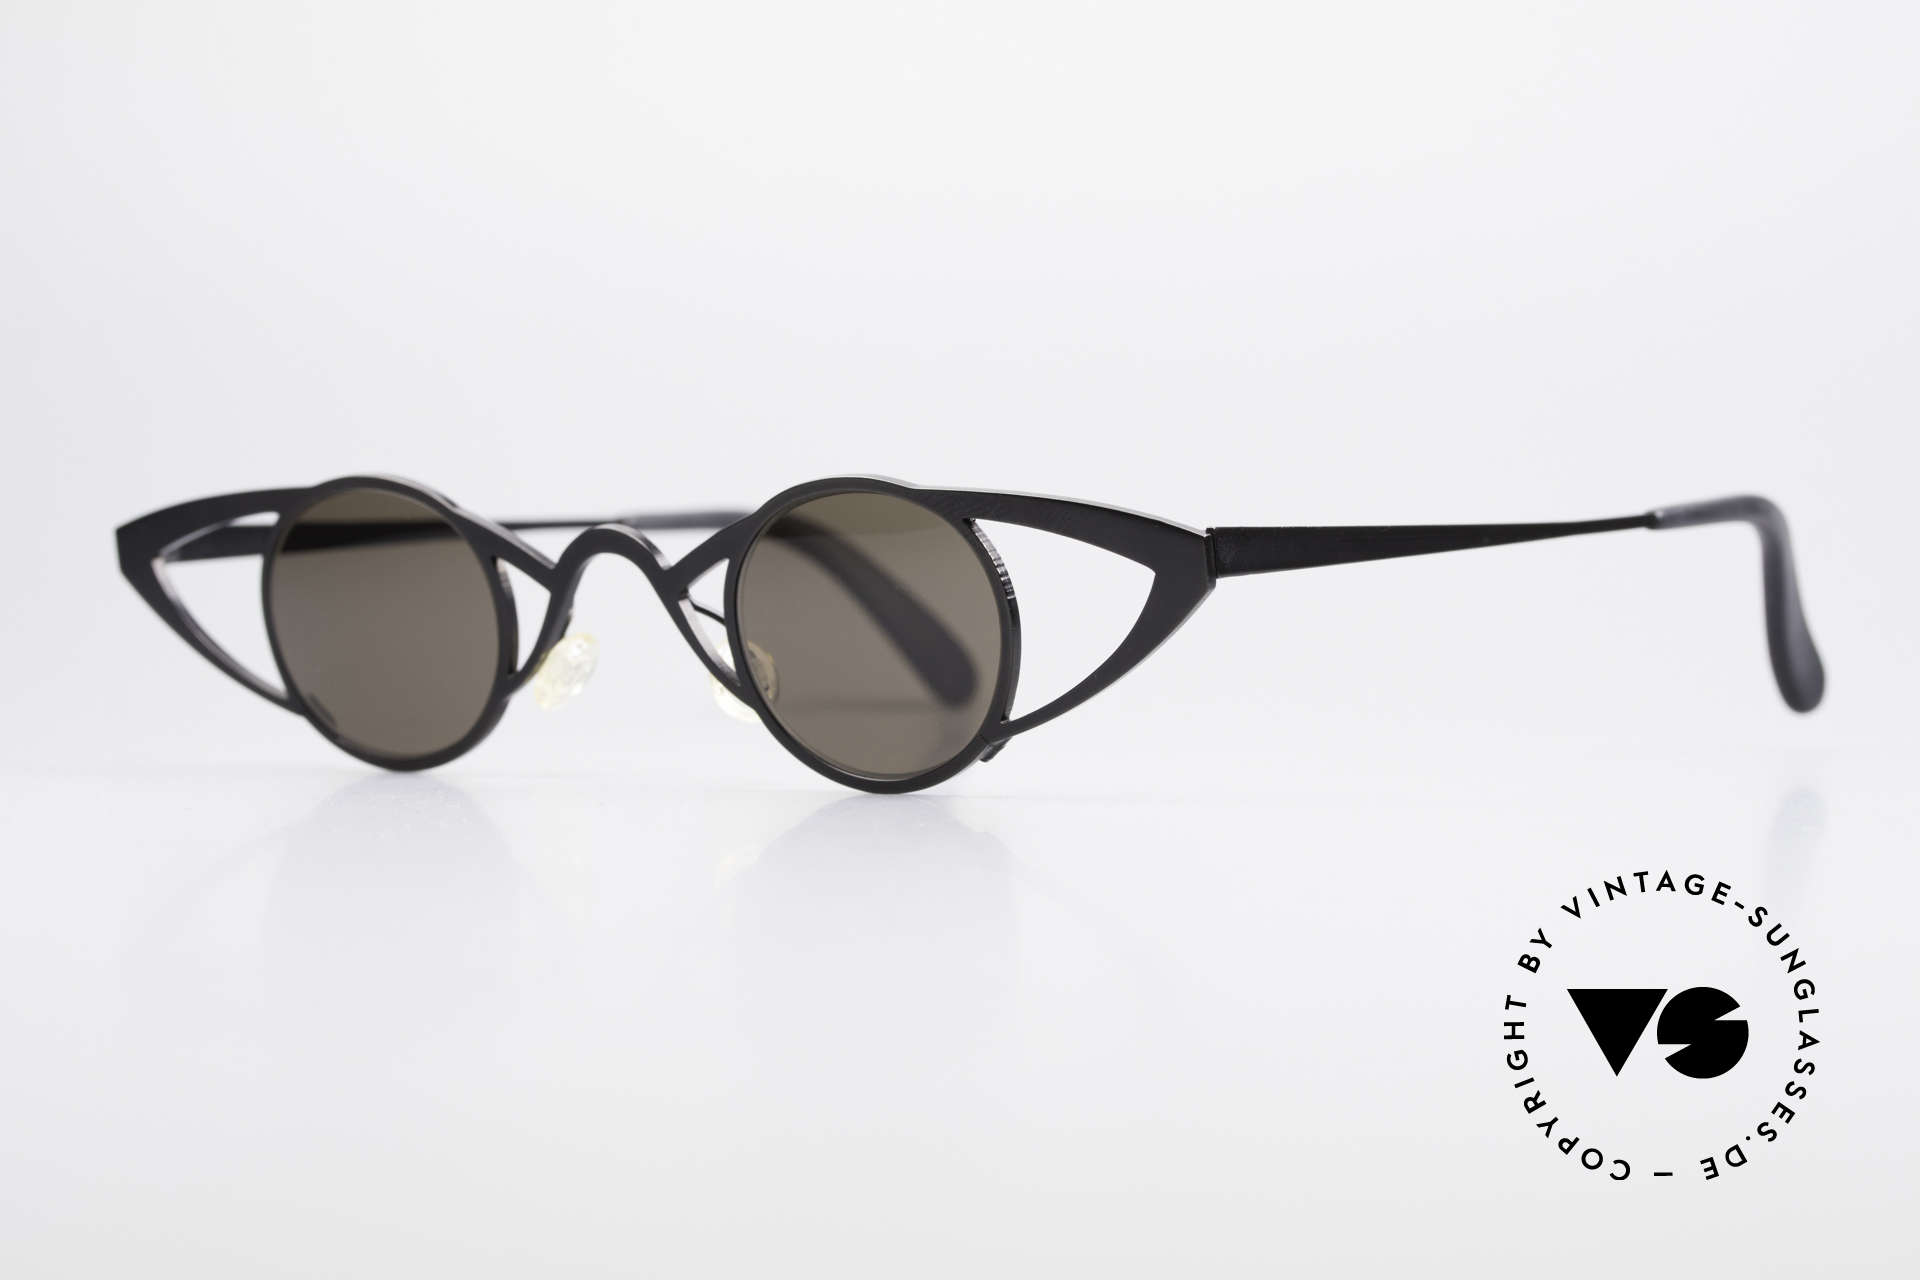 Theo Belgium Saturnus Round Designer Sunglasses, made for the avant-garde, individualists, trend-setters, Made for Women